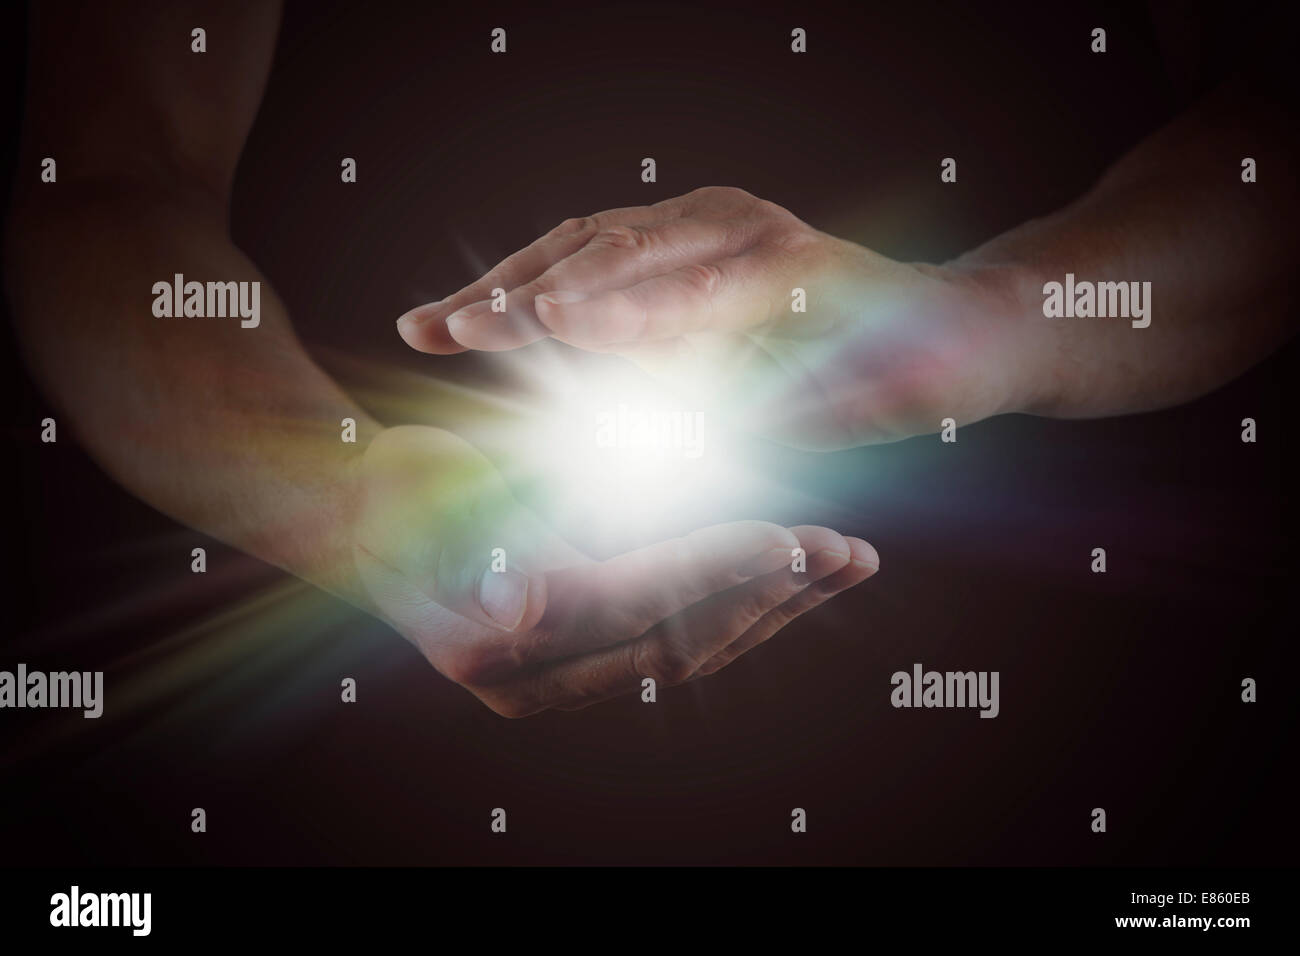 Male hands emerging from darkness, cupped, with rainbow colored bright white star burst of light between - Stock Image